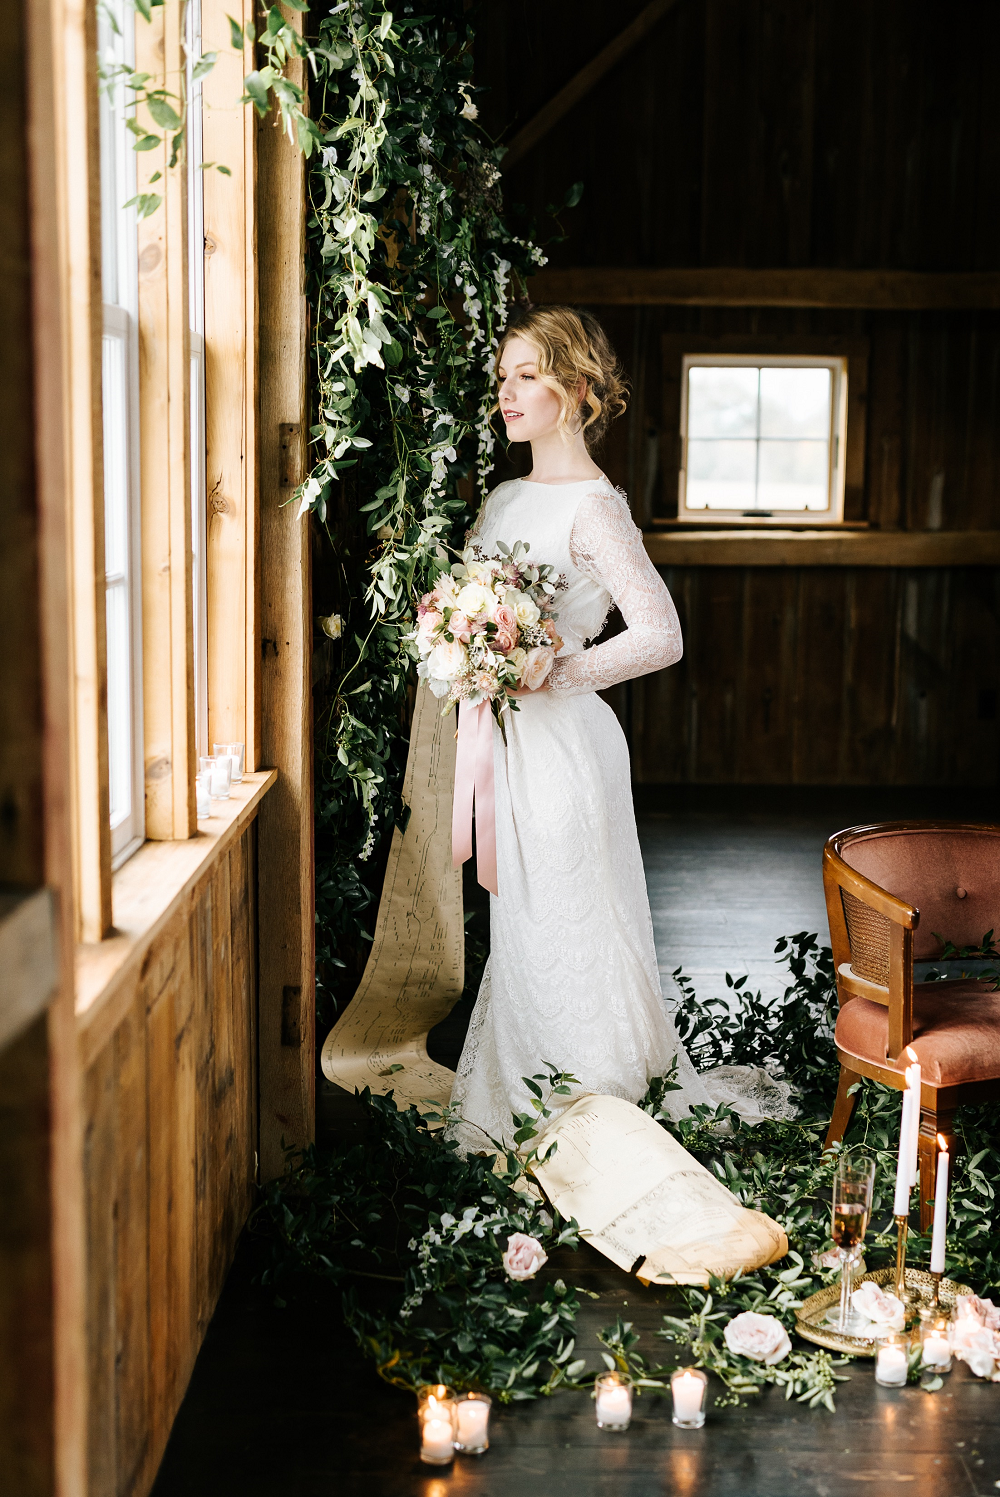 Lush Greenery Wedding Inspired Styled Shoot at Cornman Farms Bridal Details